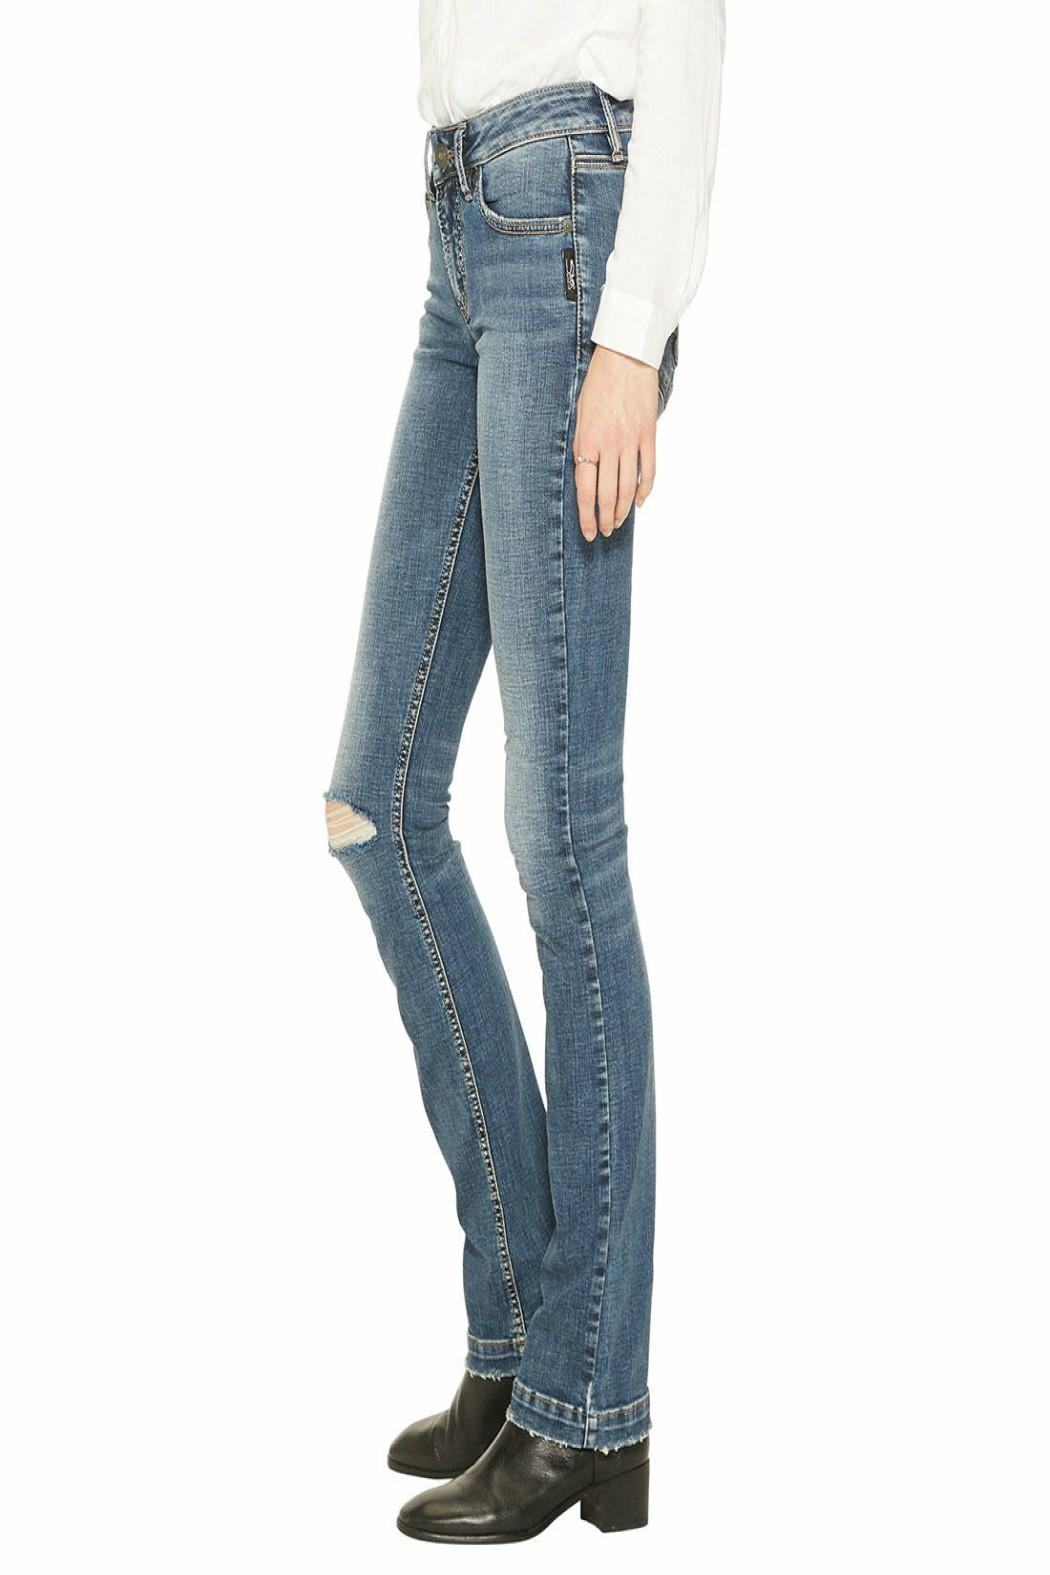 Silver Jeans Co. Slim-Boot Elyse Jeans - Side Cropped Image